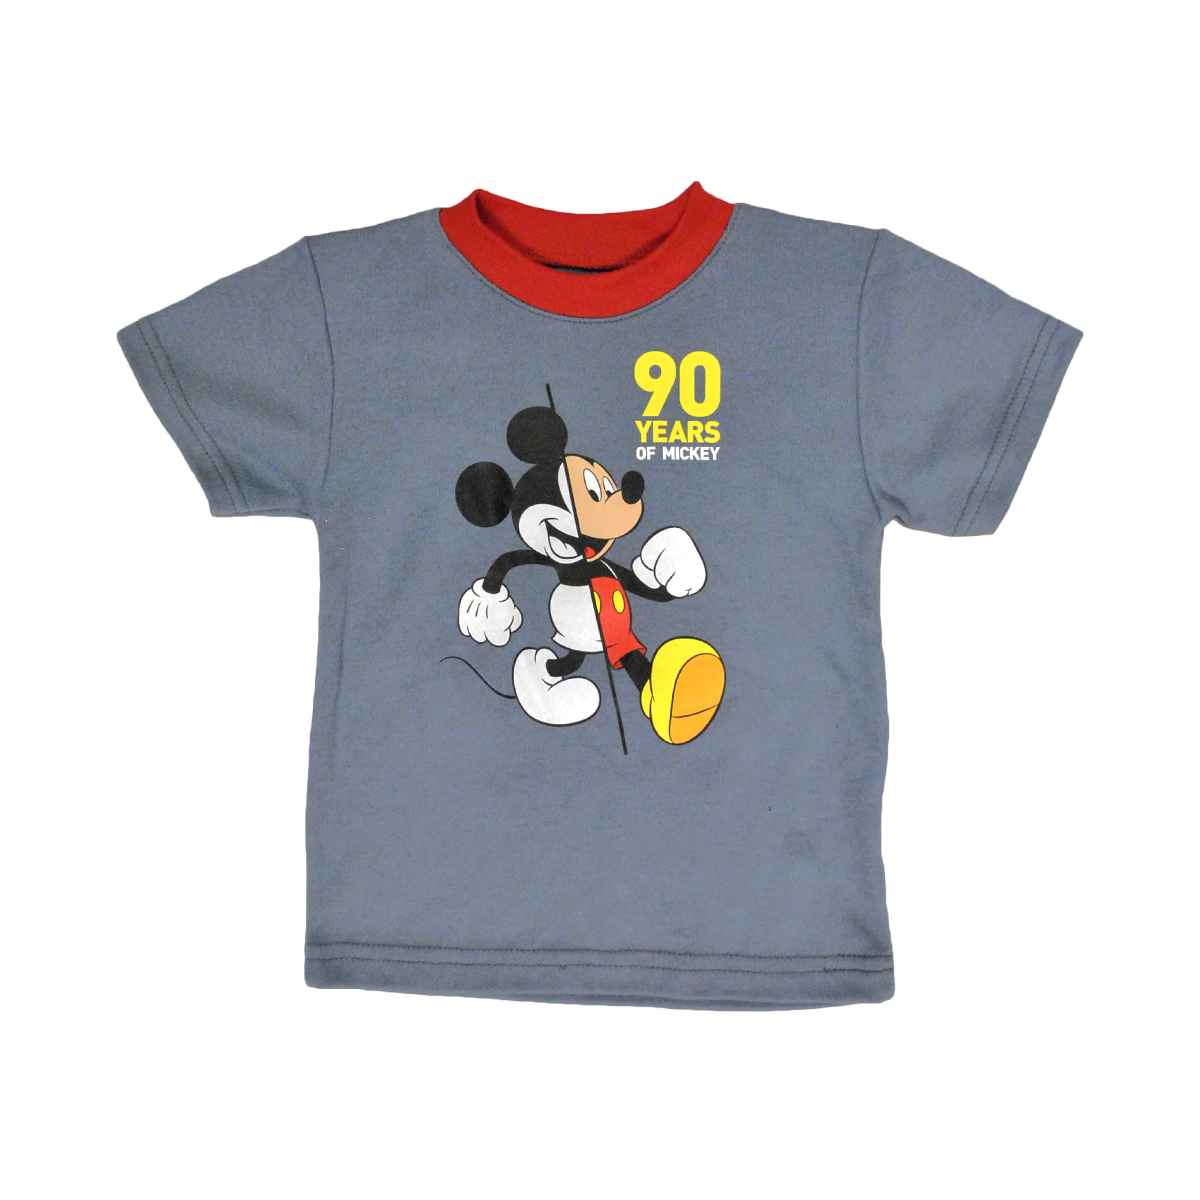 Playera Manga Corta Minnie